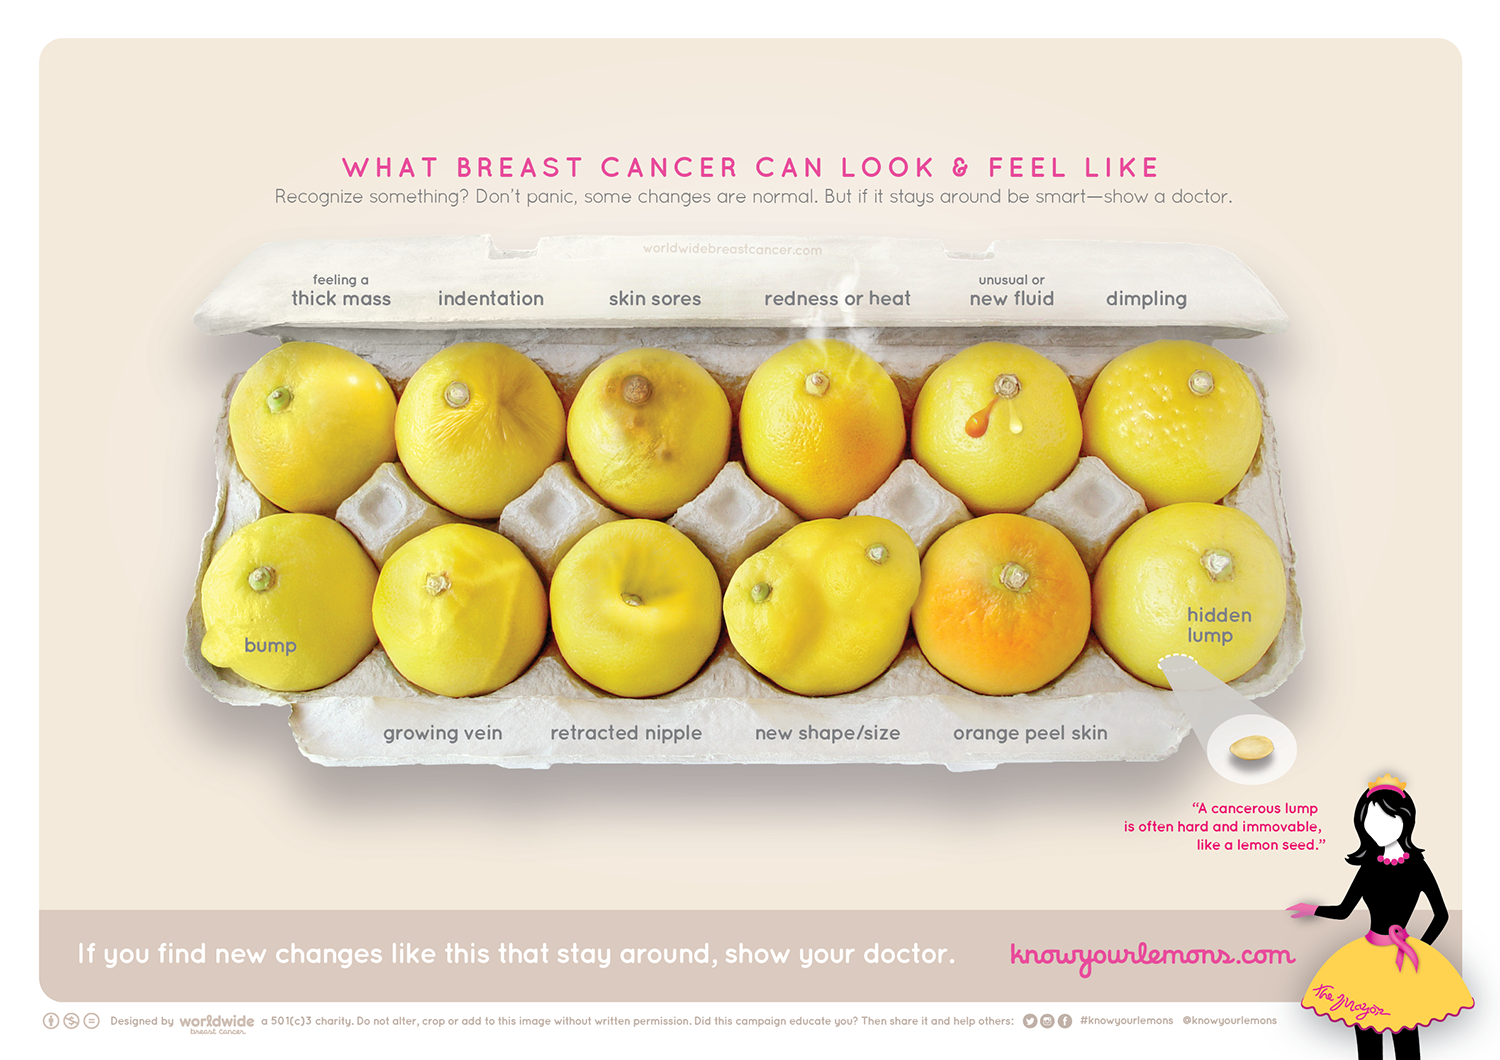 Wordless Wednesday: #KnowYourLemons